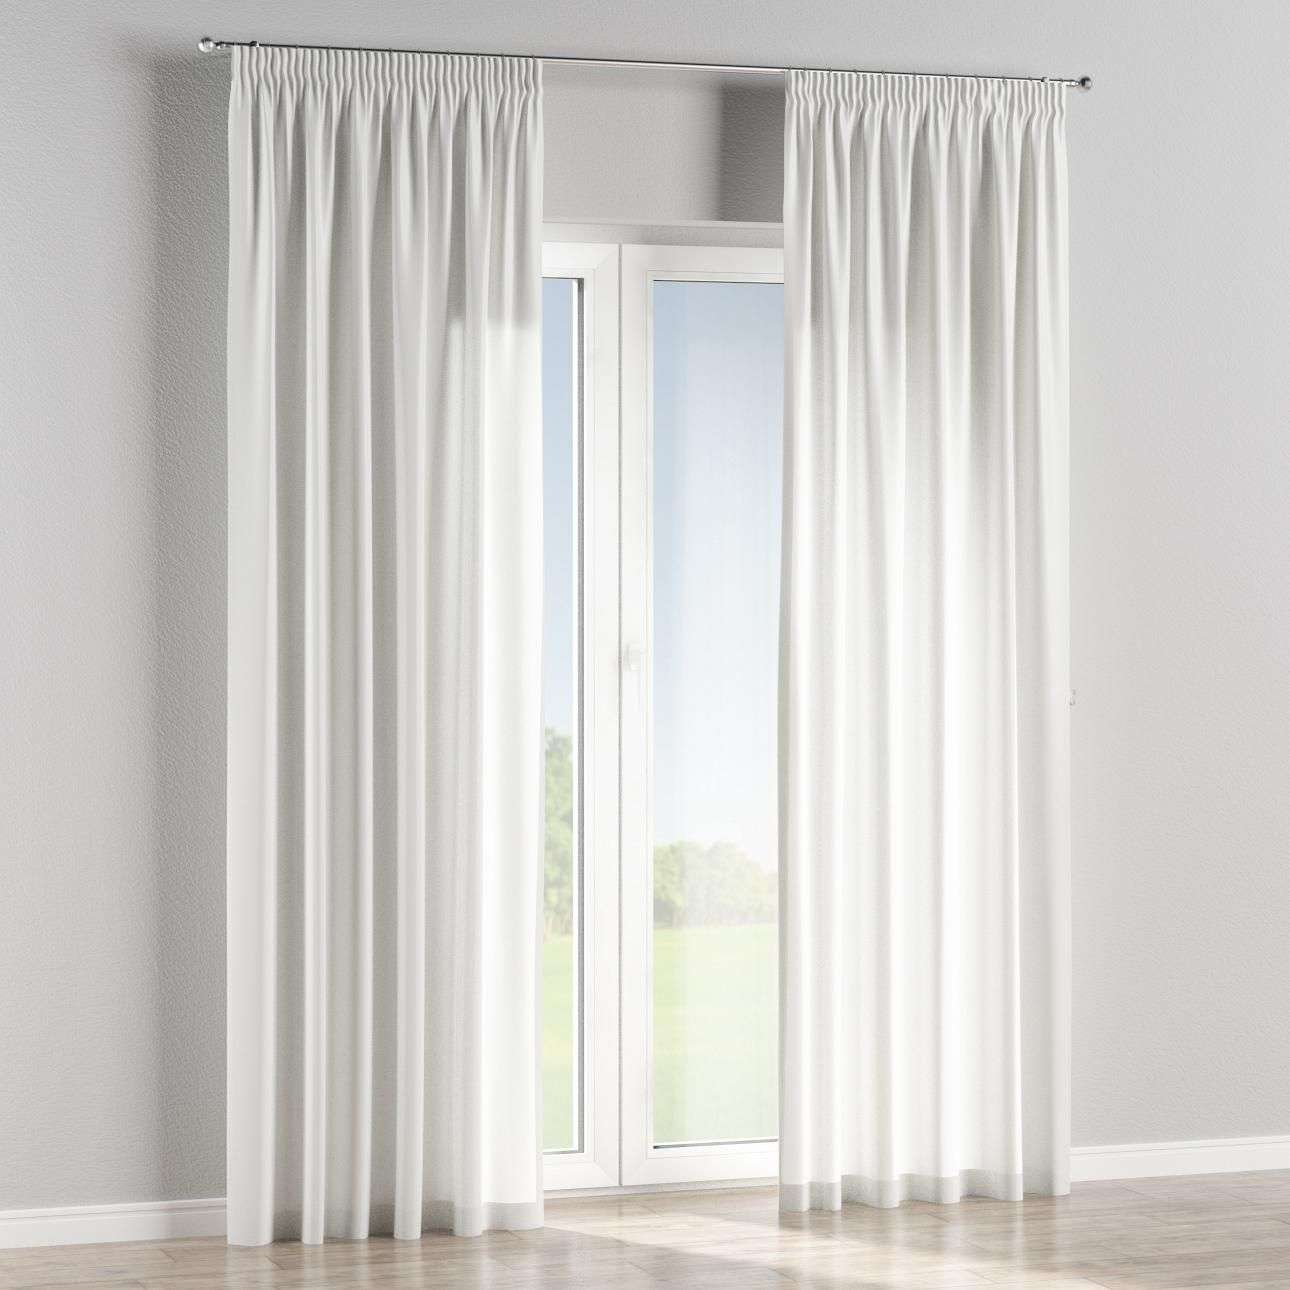 Pencil pleat curtains in collection Rustica, fabric: 140-31